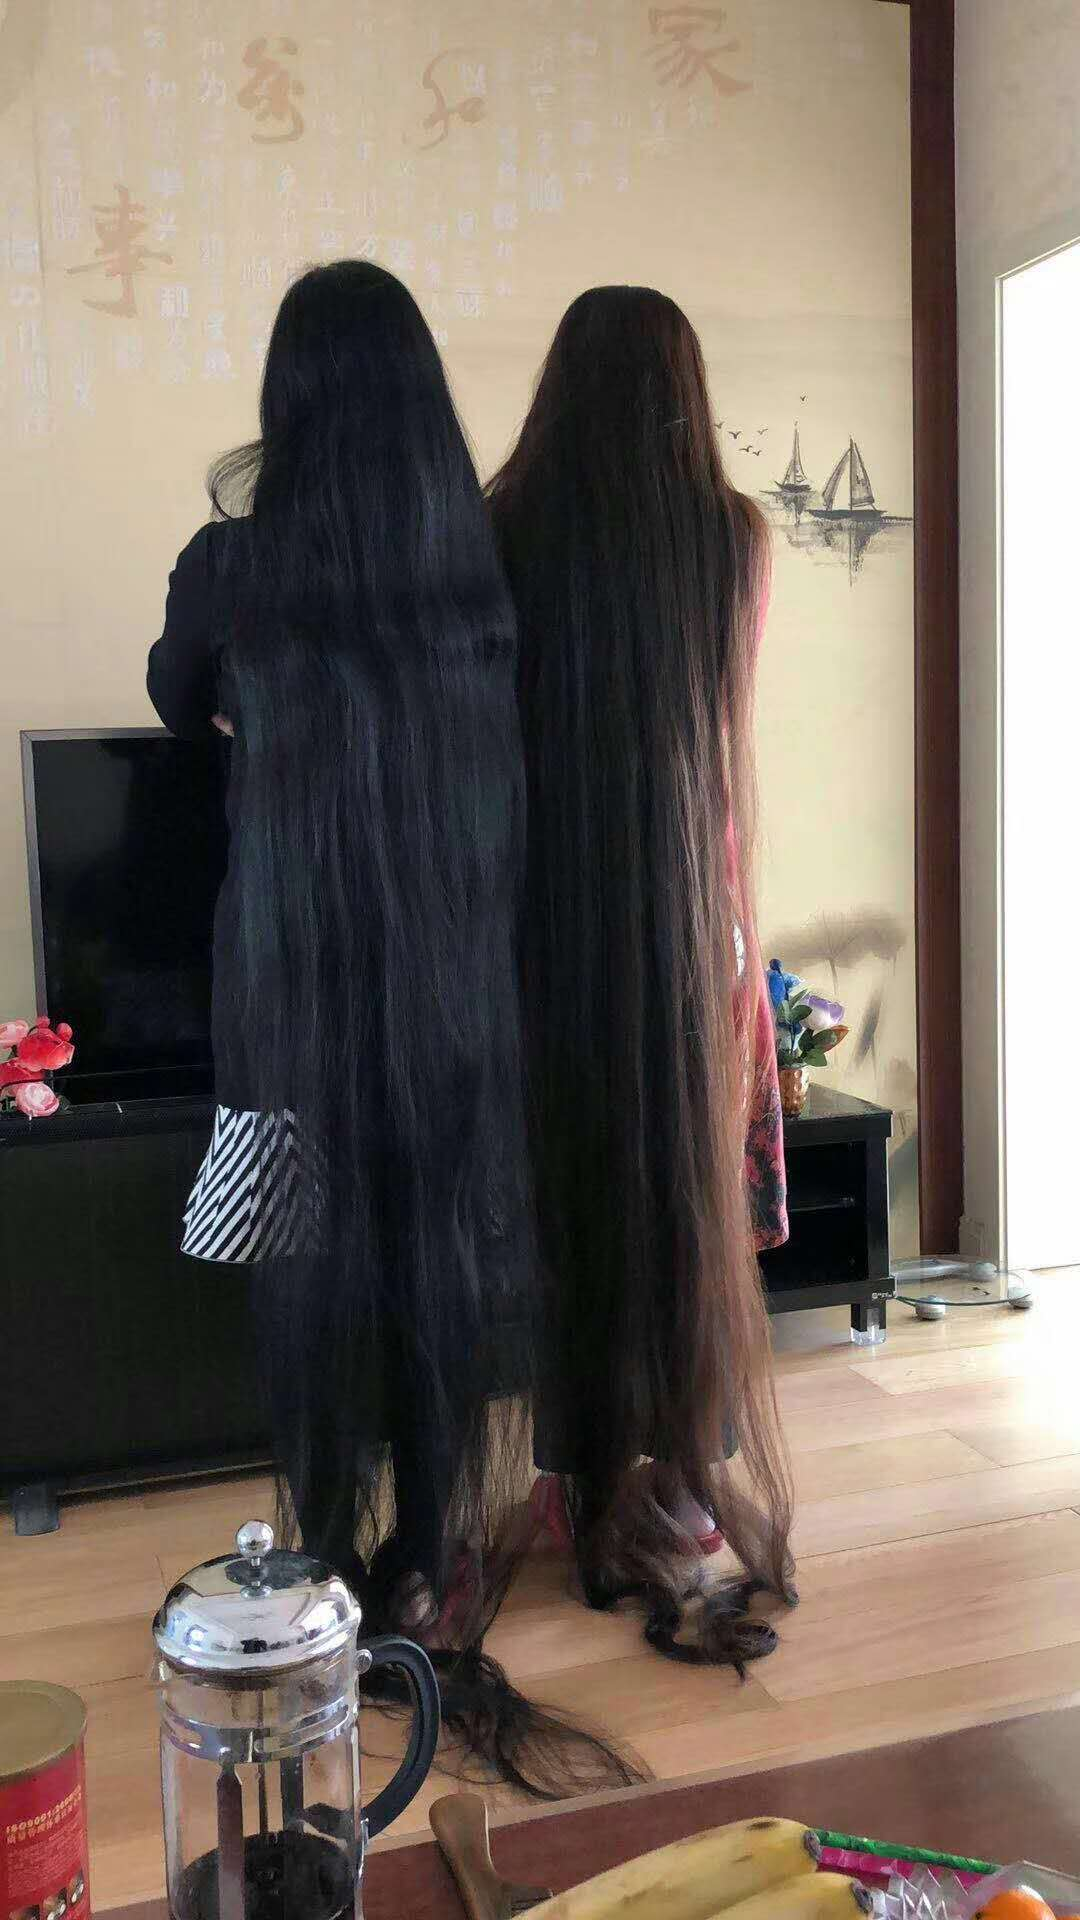 2 super long hair ladies stand together